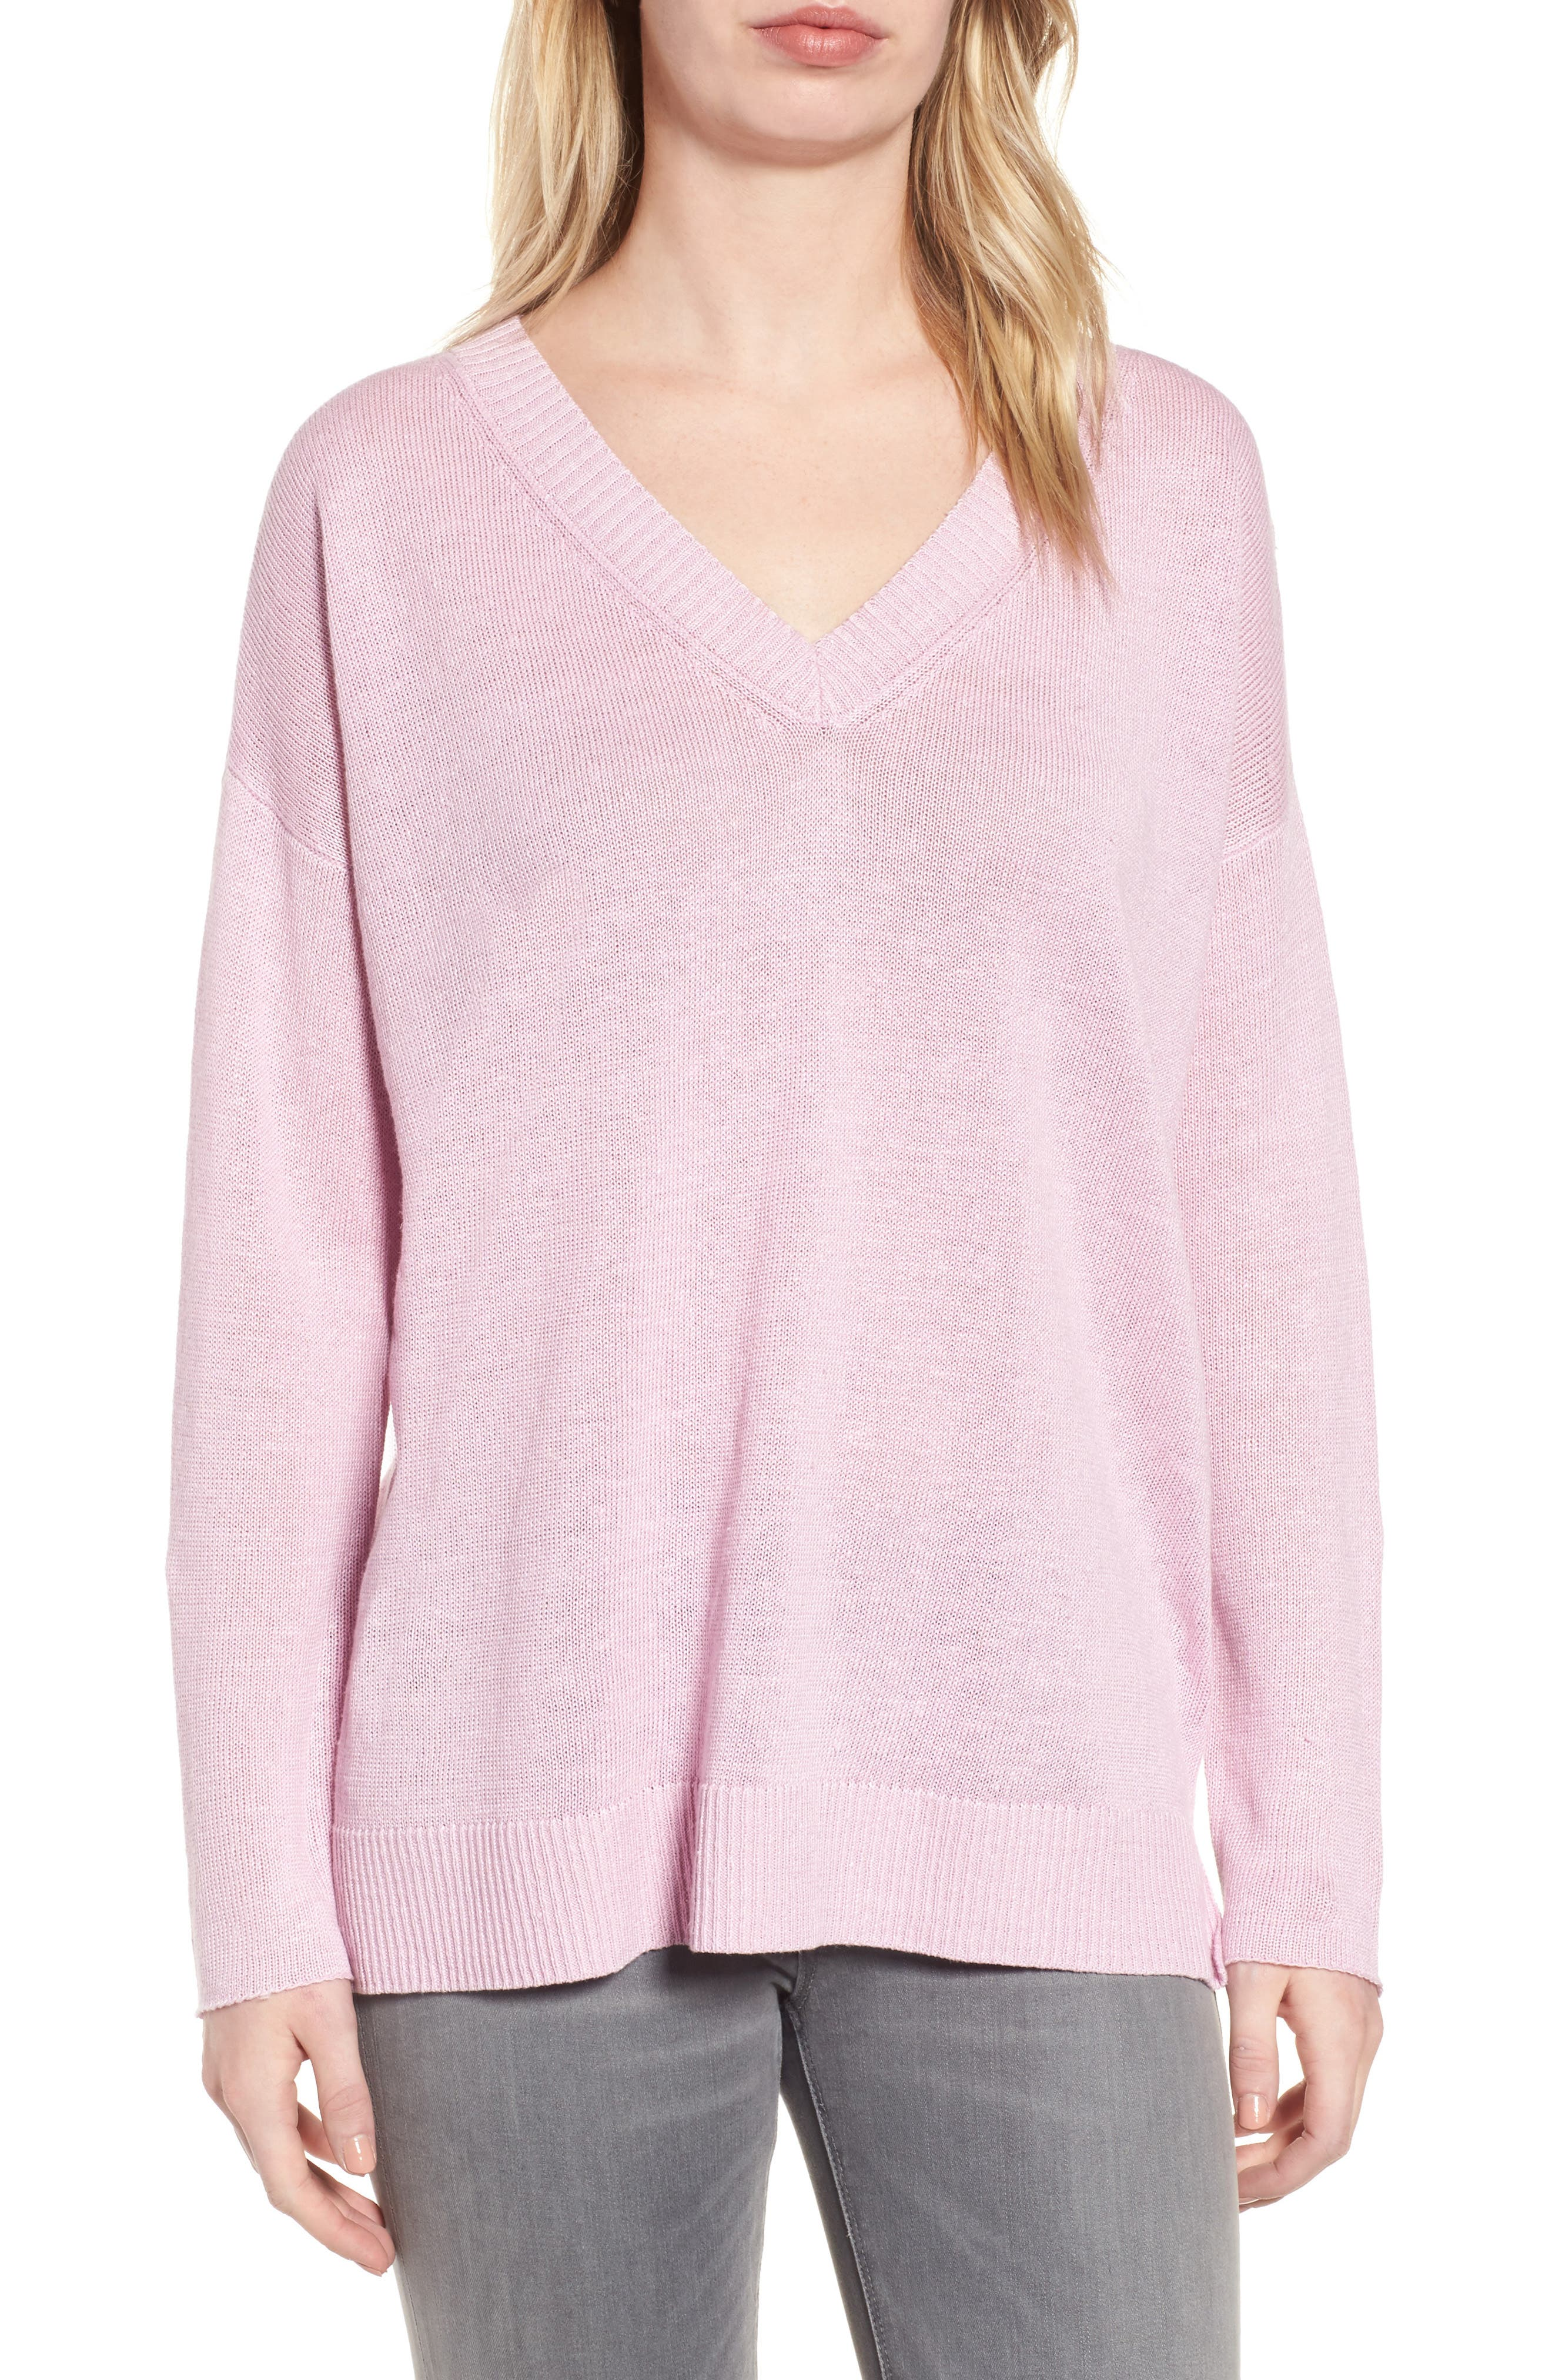 Eileen Fisher Organic Linen Sweater (Regular & Petite)